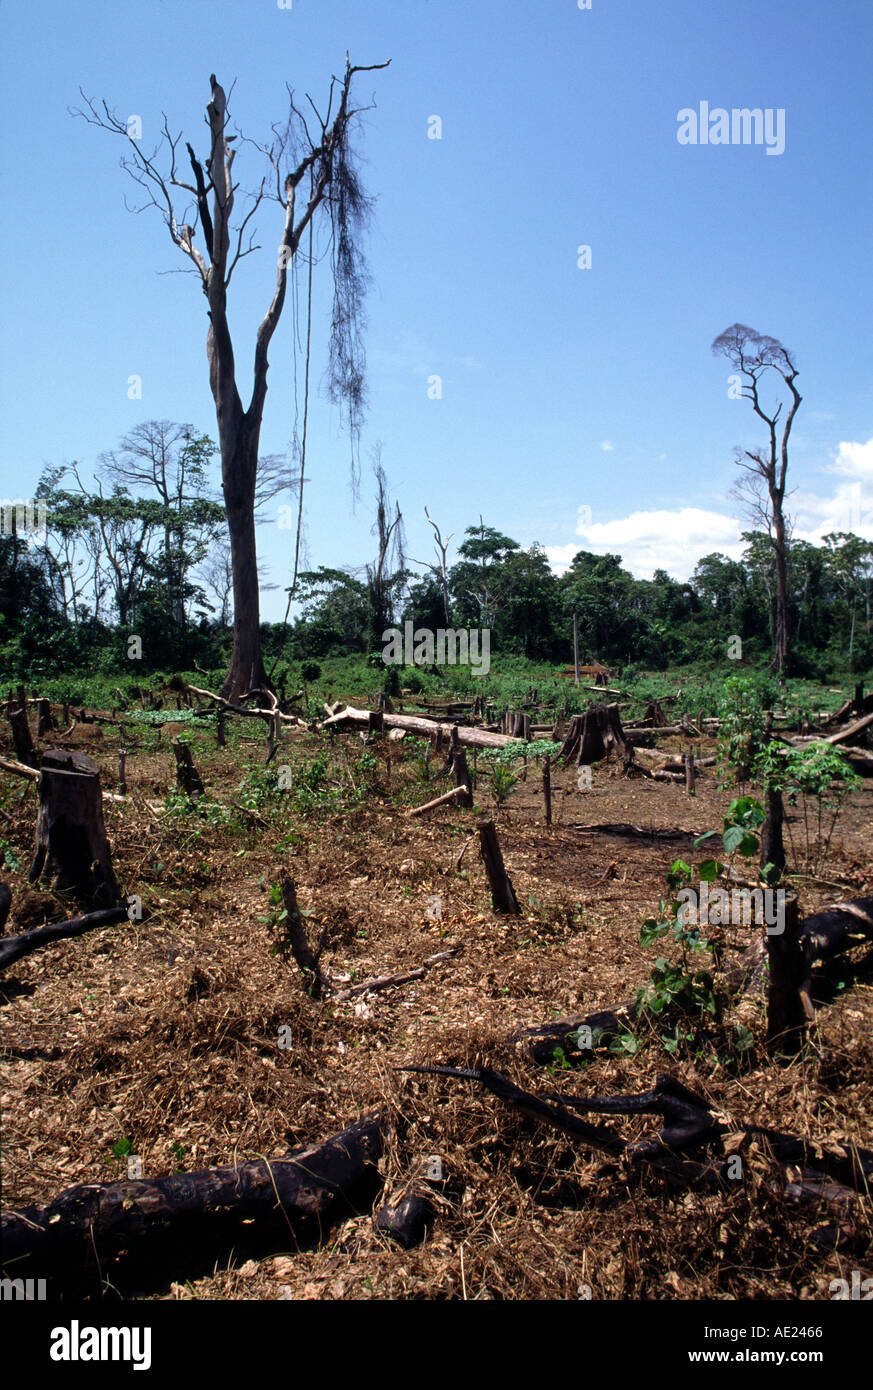 La déforestation, la Côte d'Ivoire Photo Stock